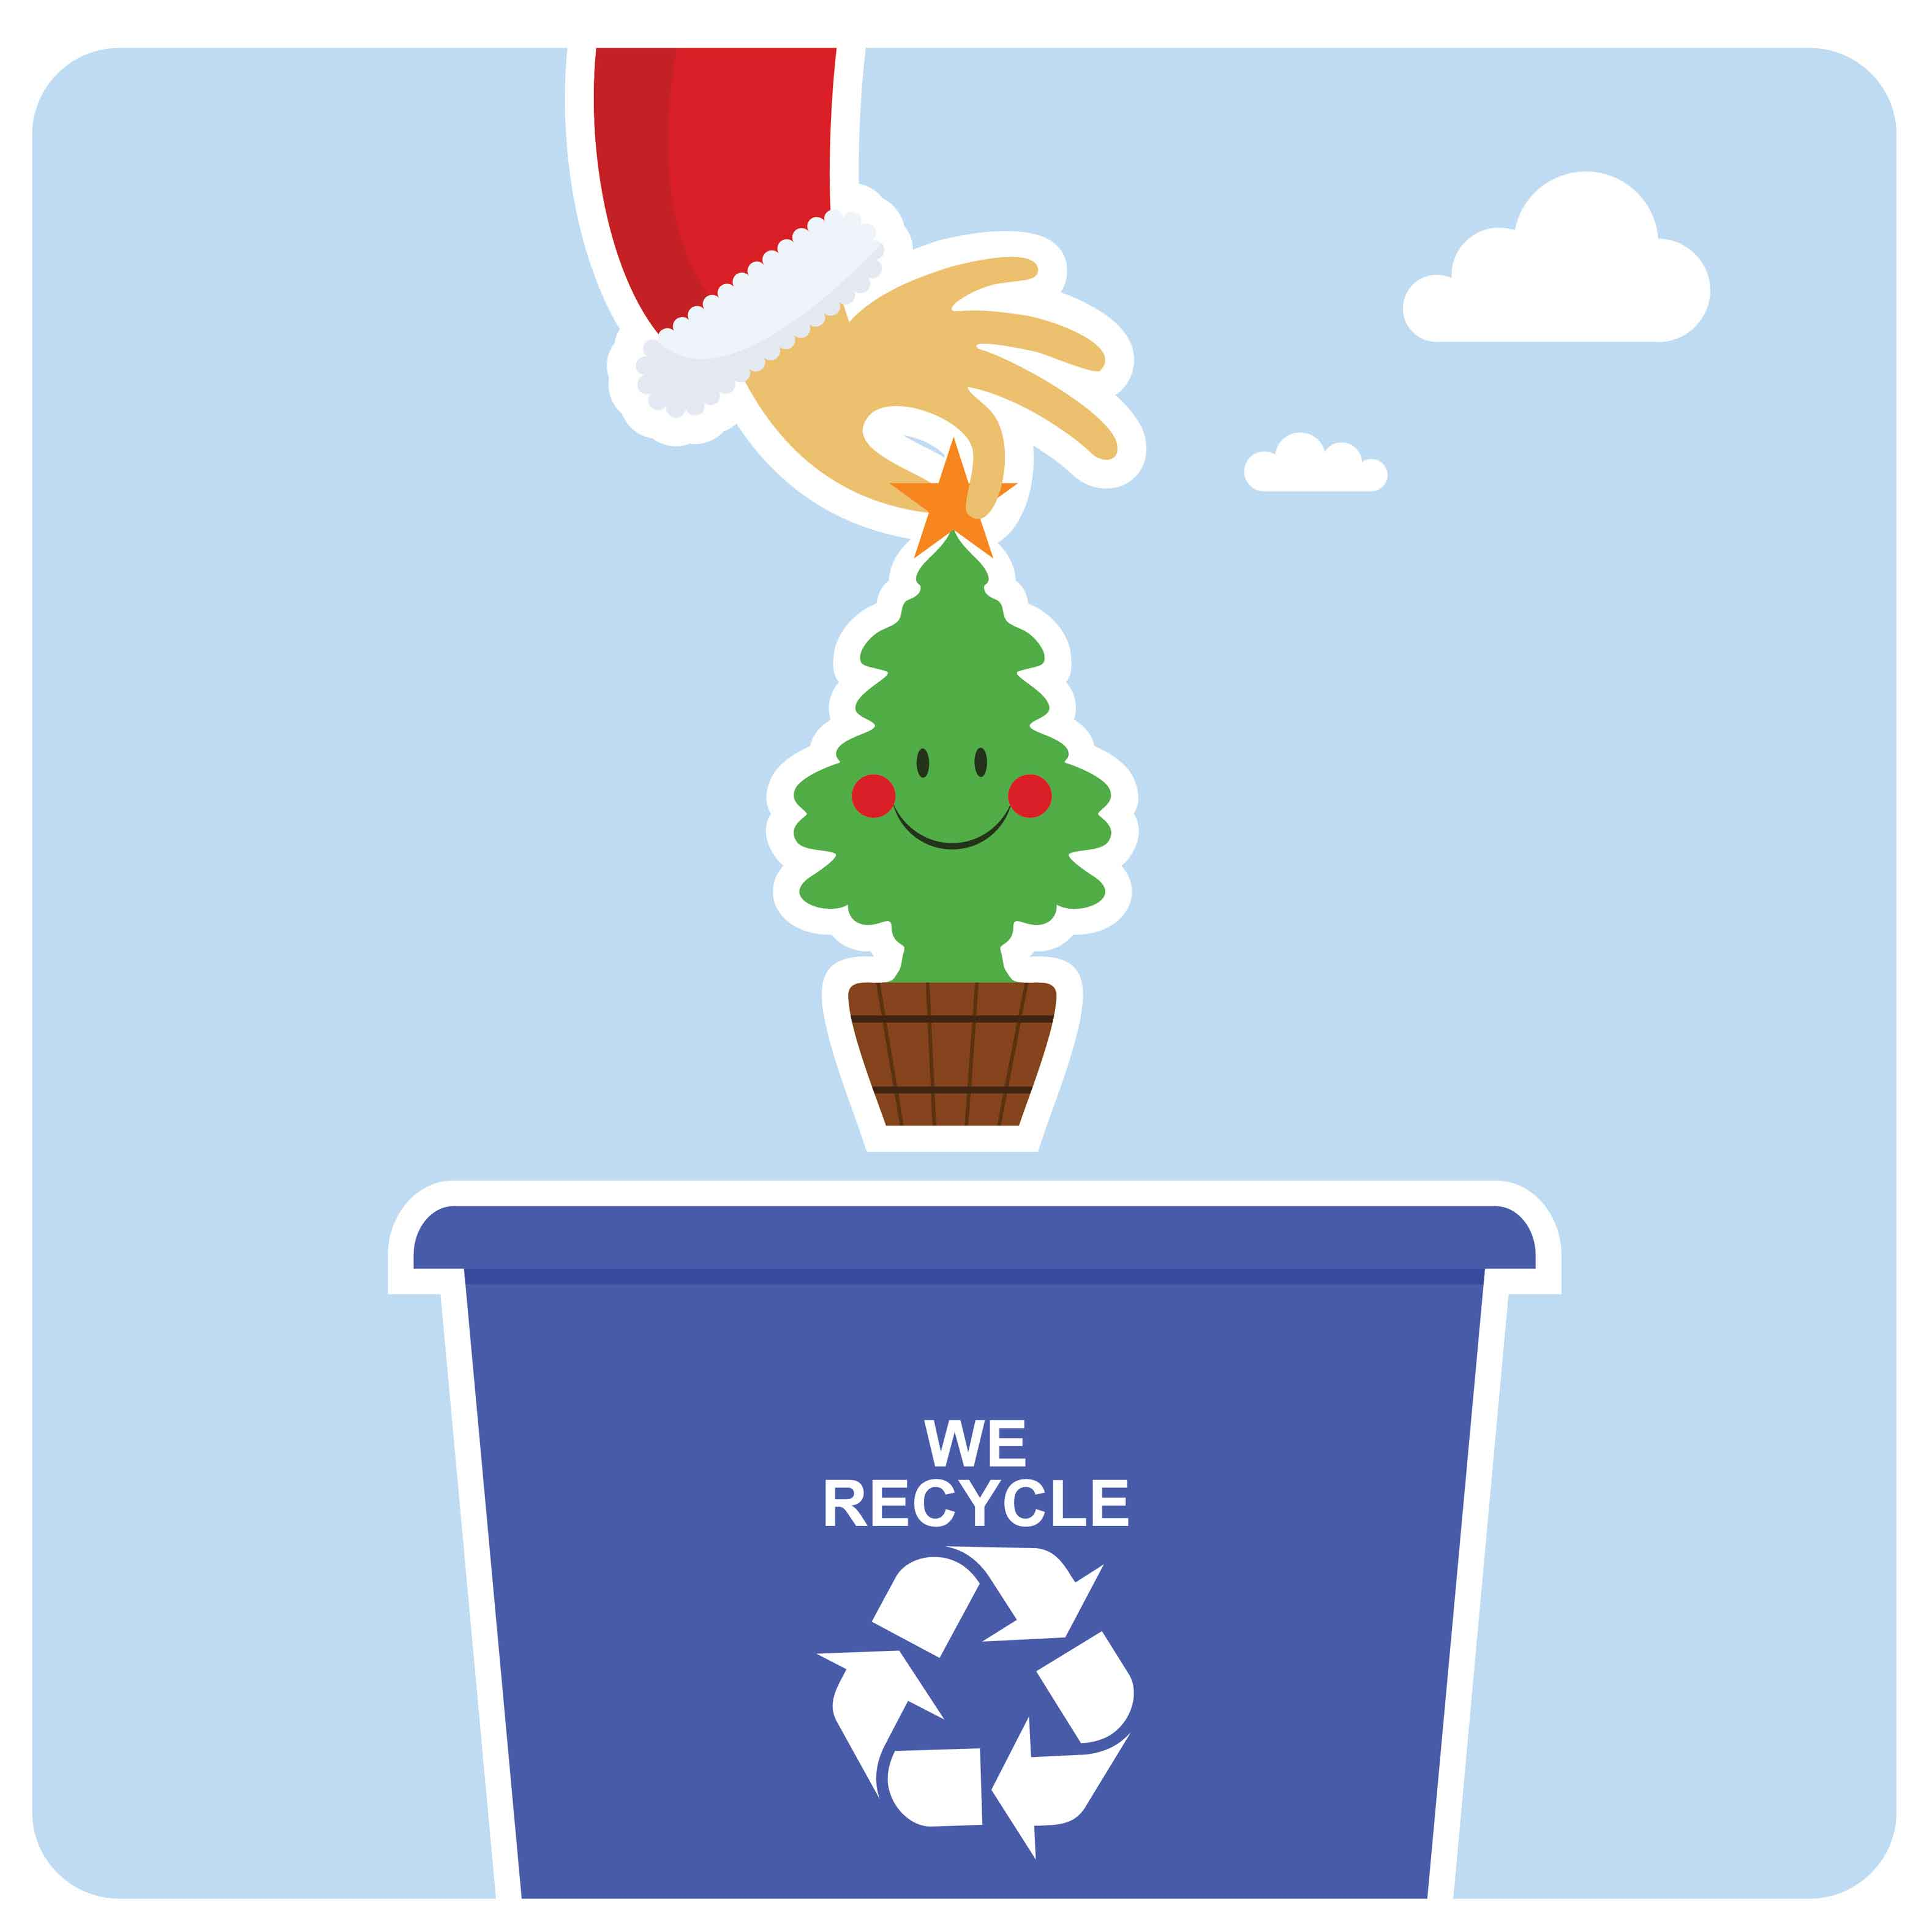 Cartoon decpiction of a Christmas tree being dropped into a recycling bin